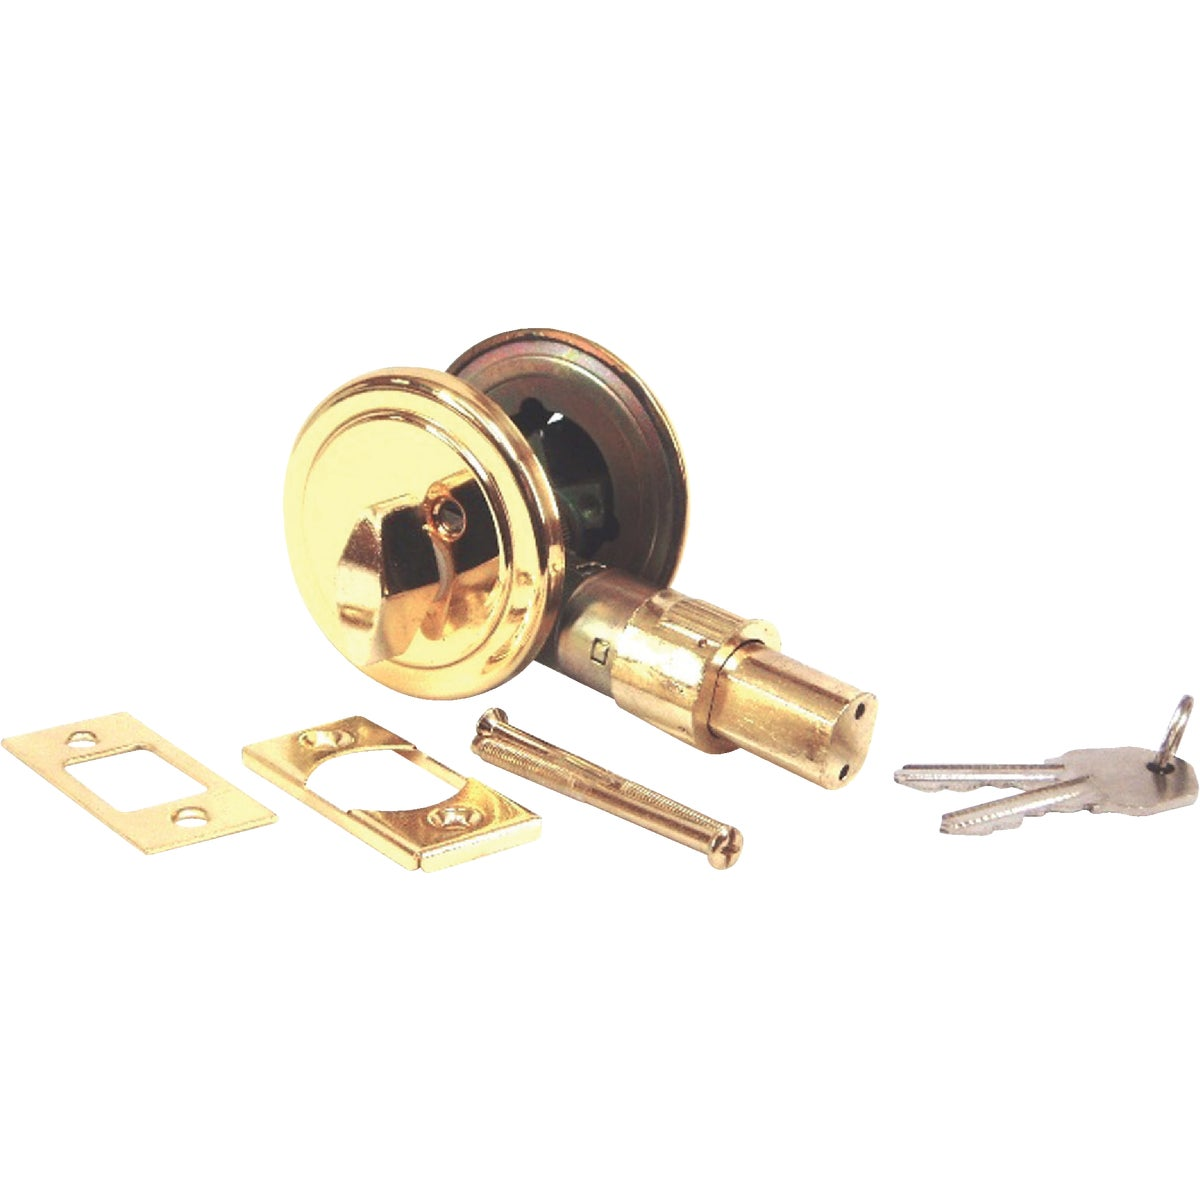 BRASS DEADBOLT - D-083B by U S Hardware